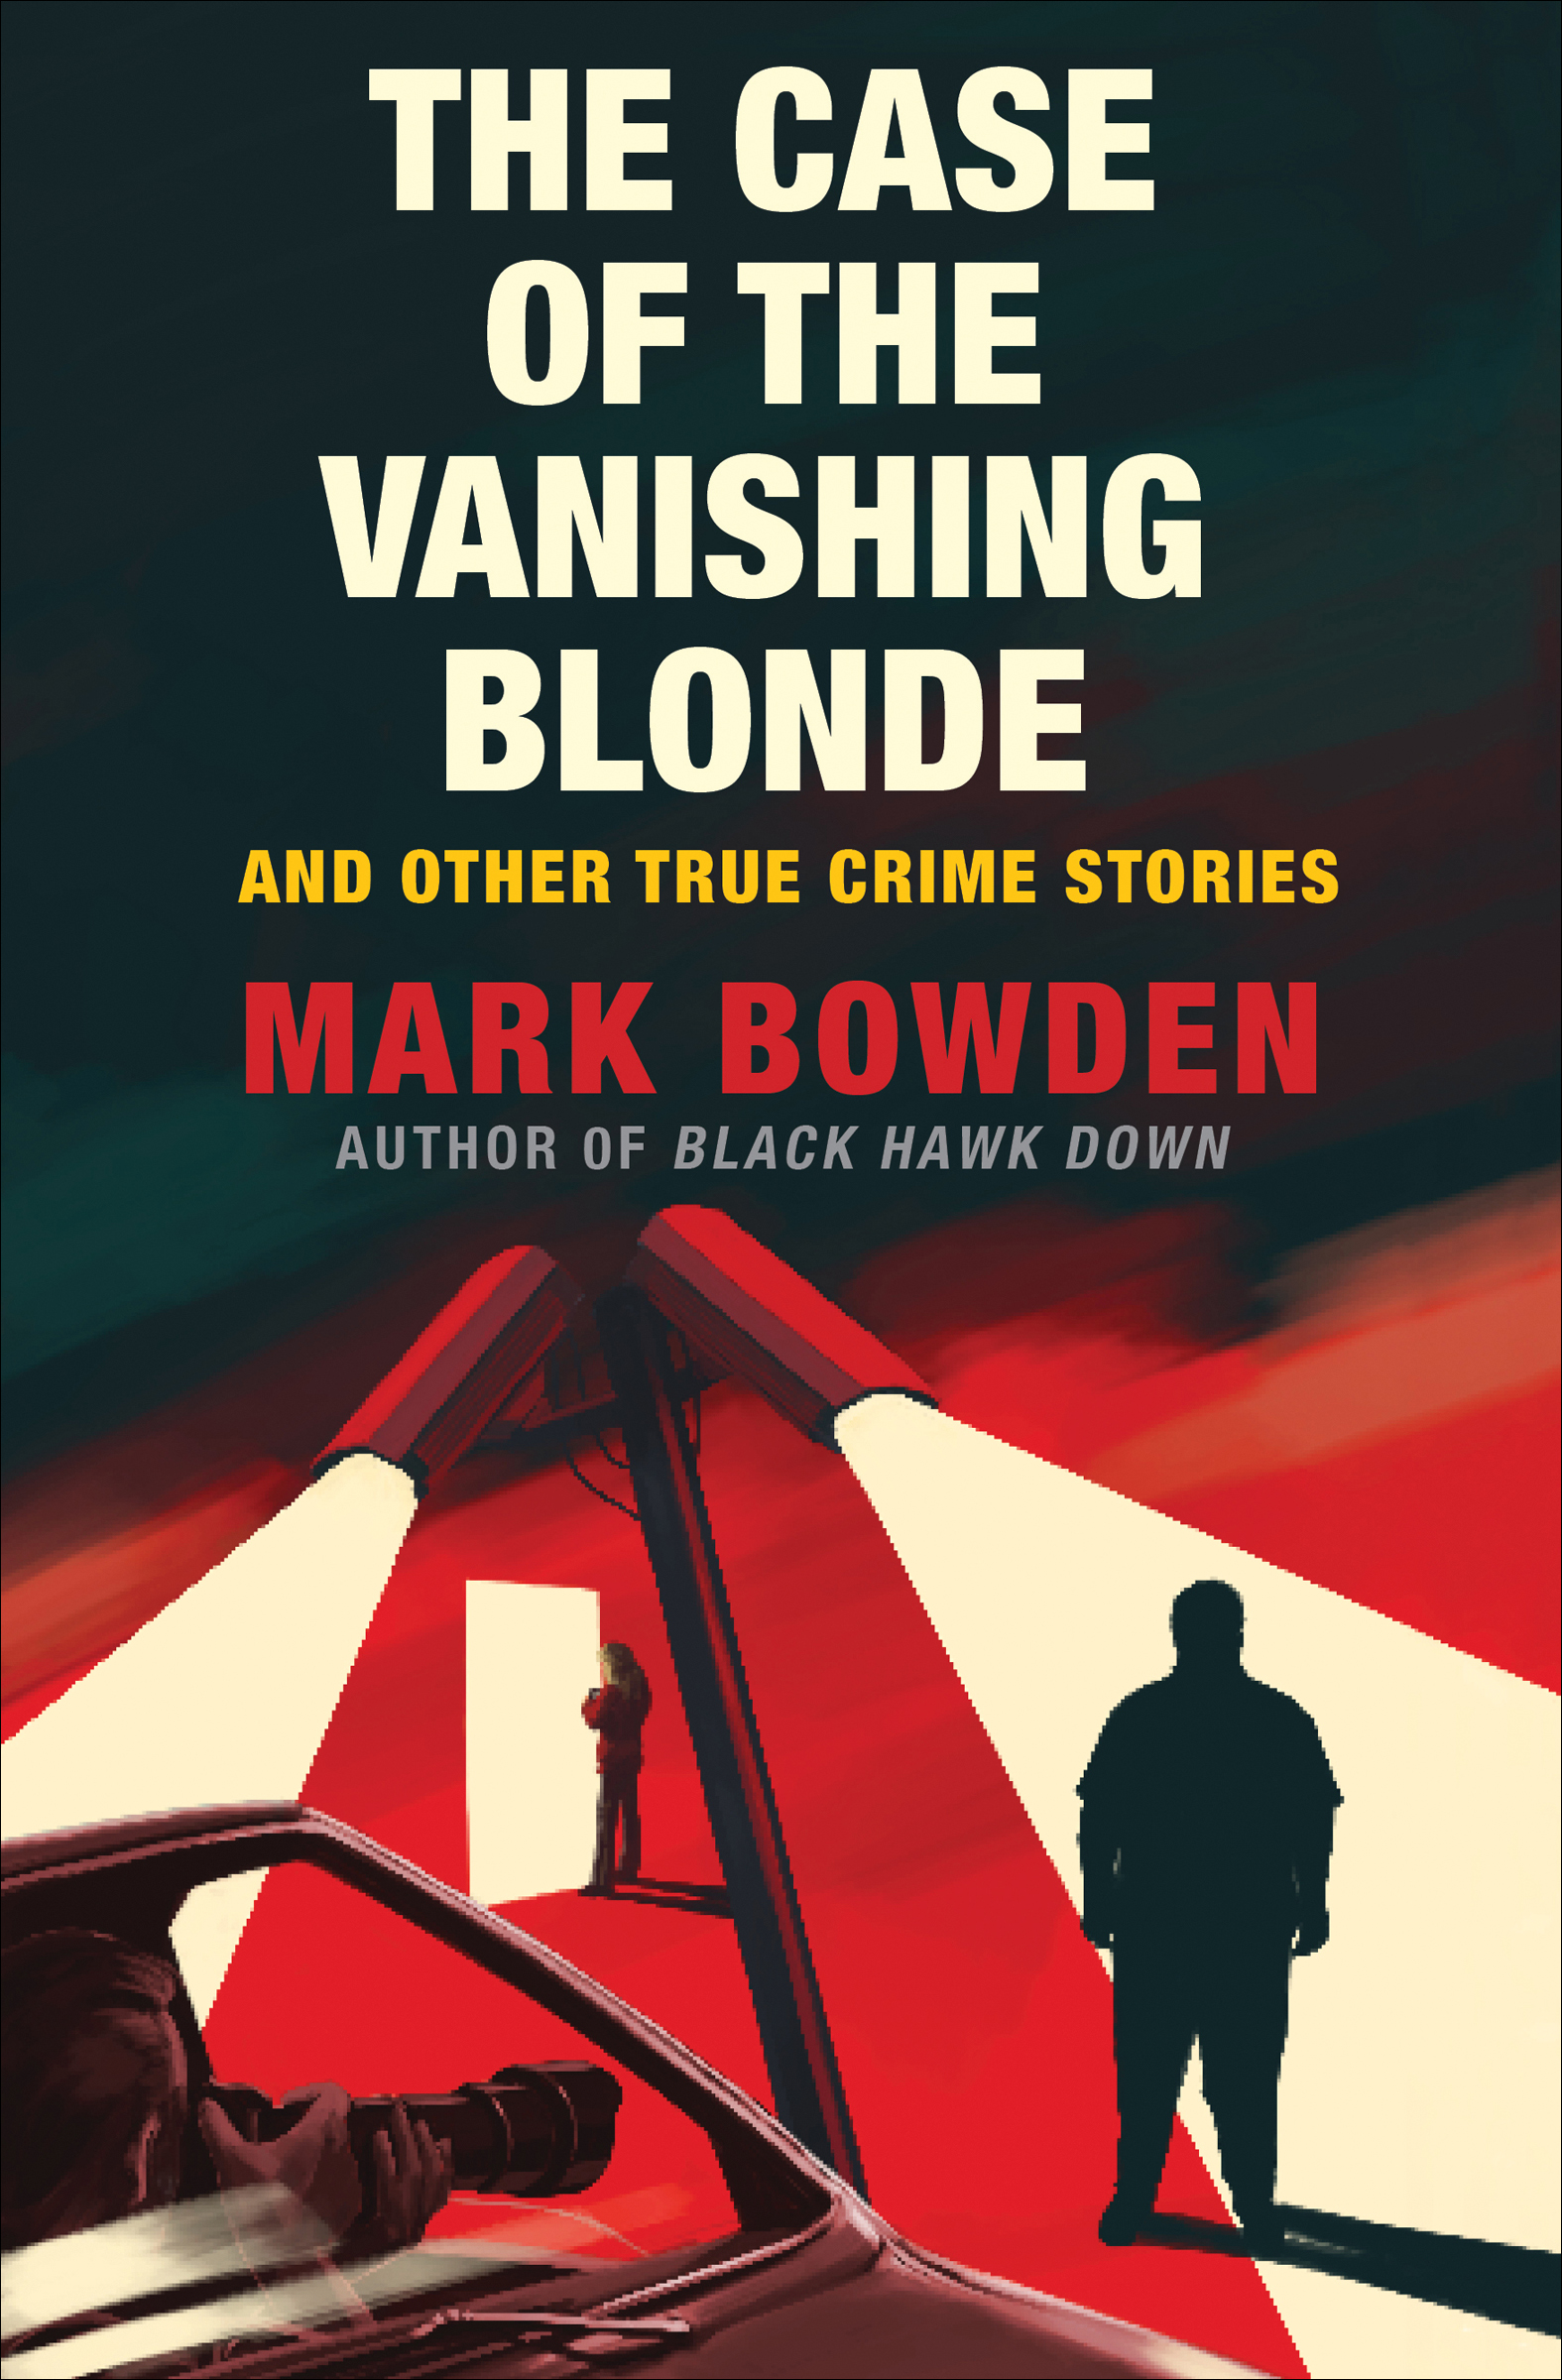 The Case of the Vanishing Blonde And Other True Crime Stories